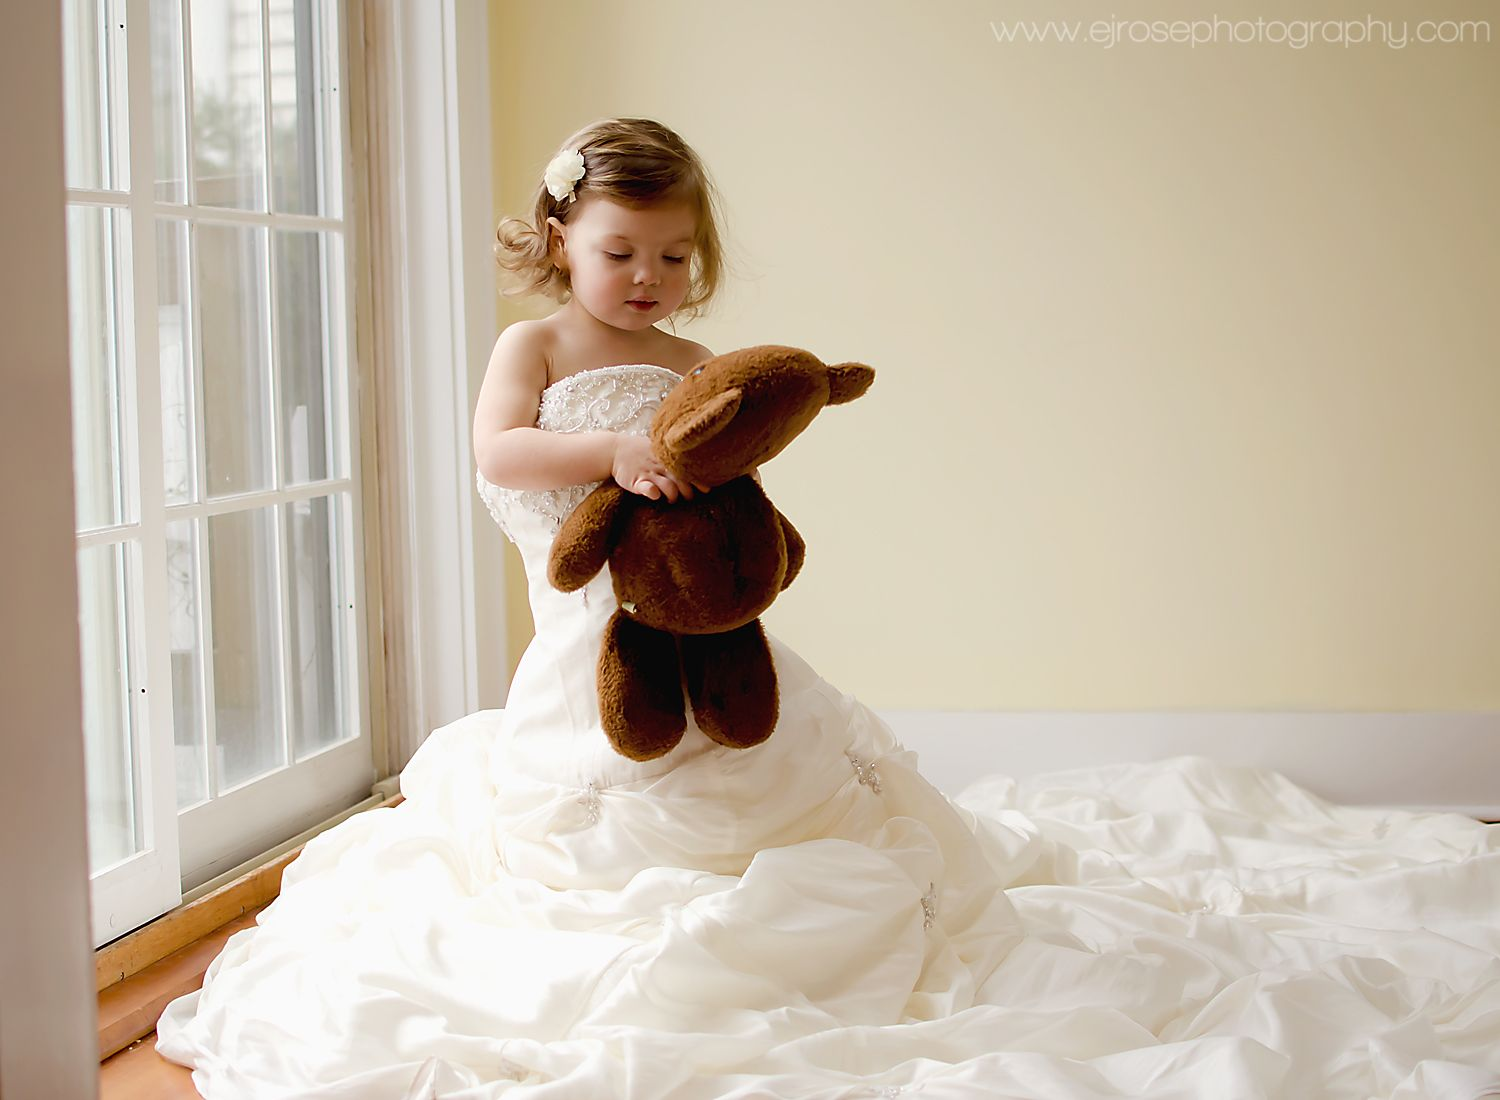 mom's wedding dress Toddler Girl in Mom s Wedding Dress www facebook com ejrosephoto Morris